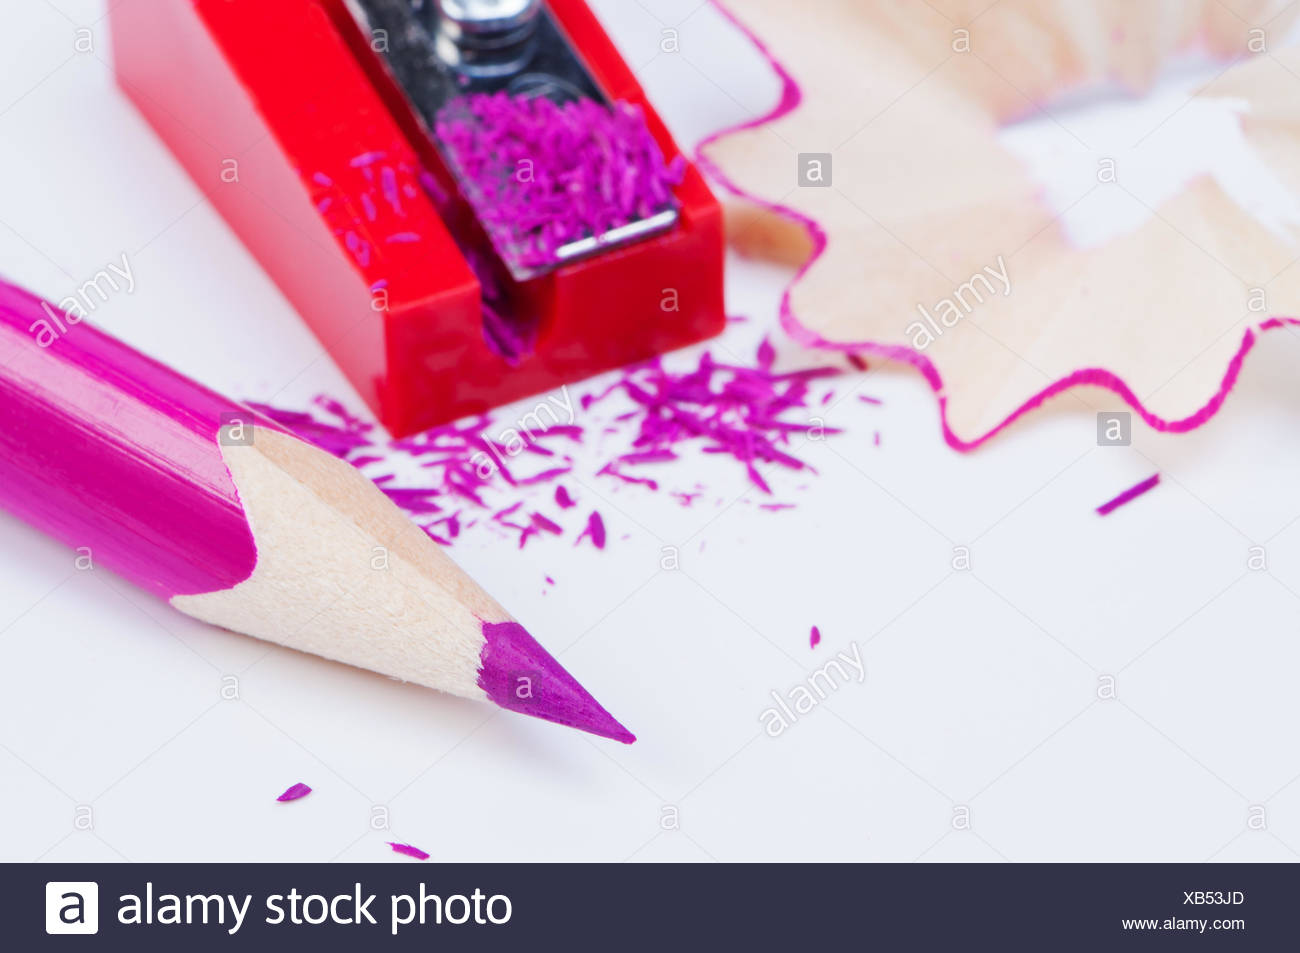 Colored pencil with sharpener close-up. - Stock Image